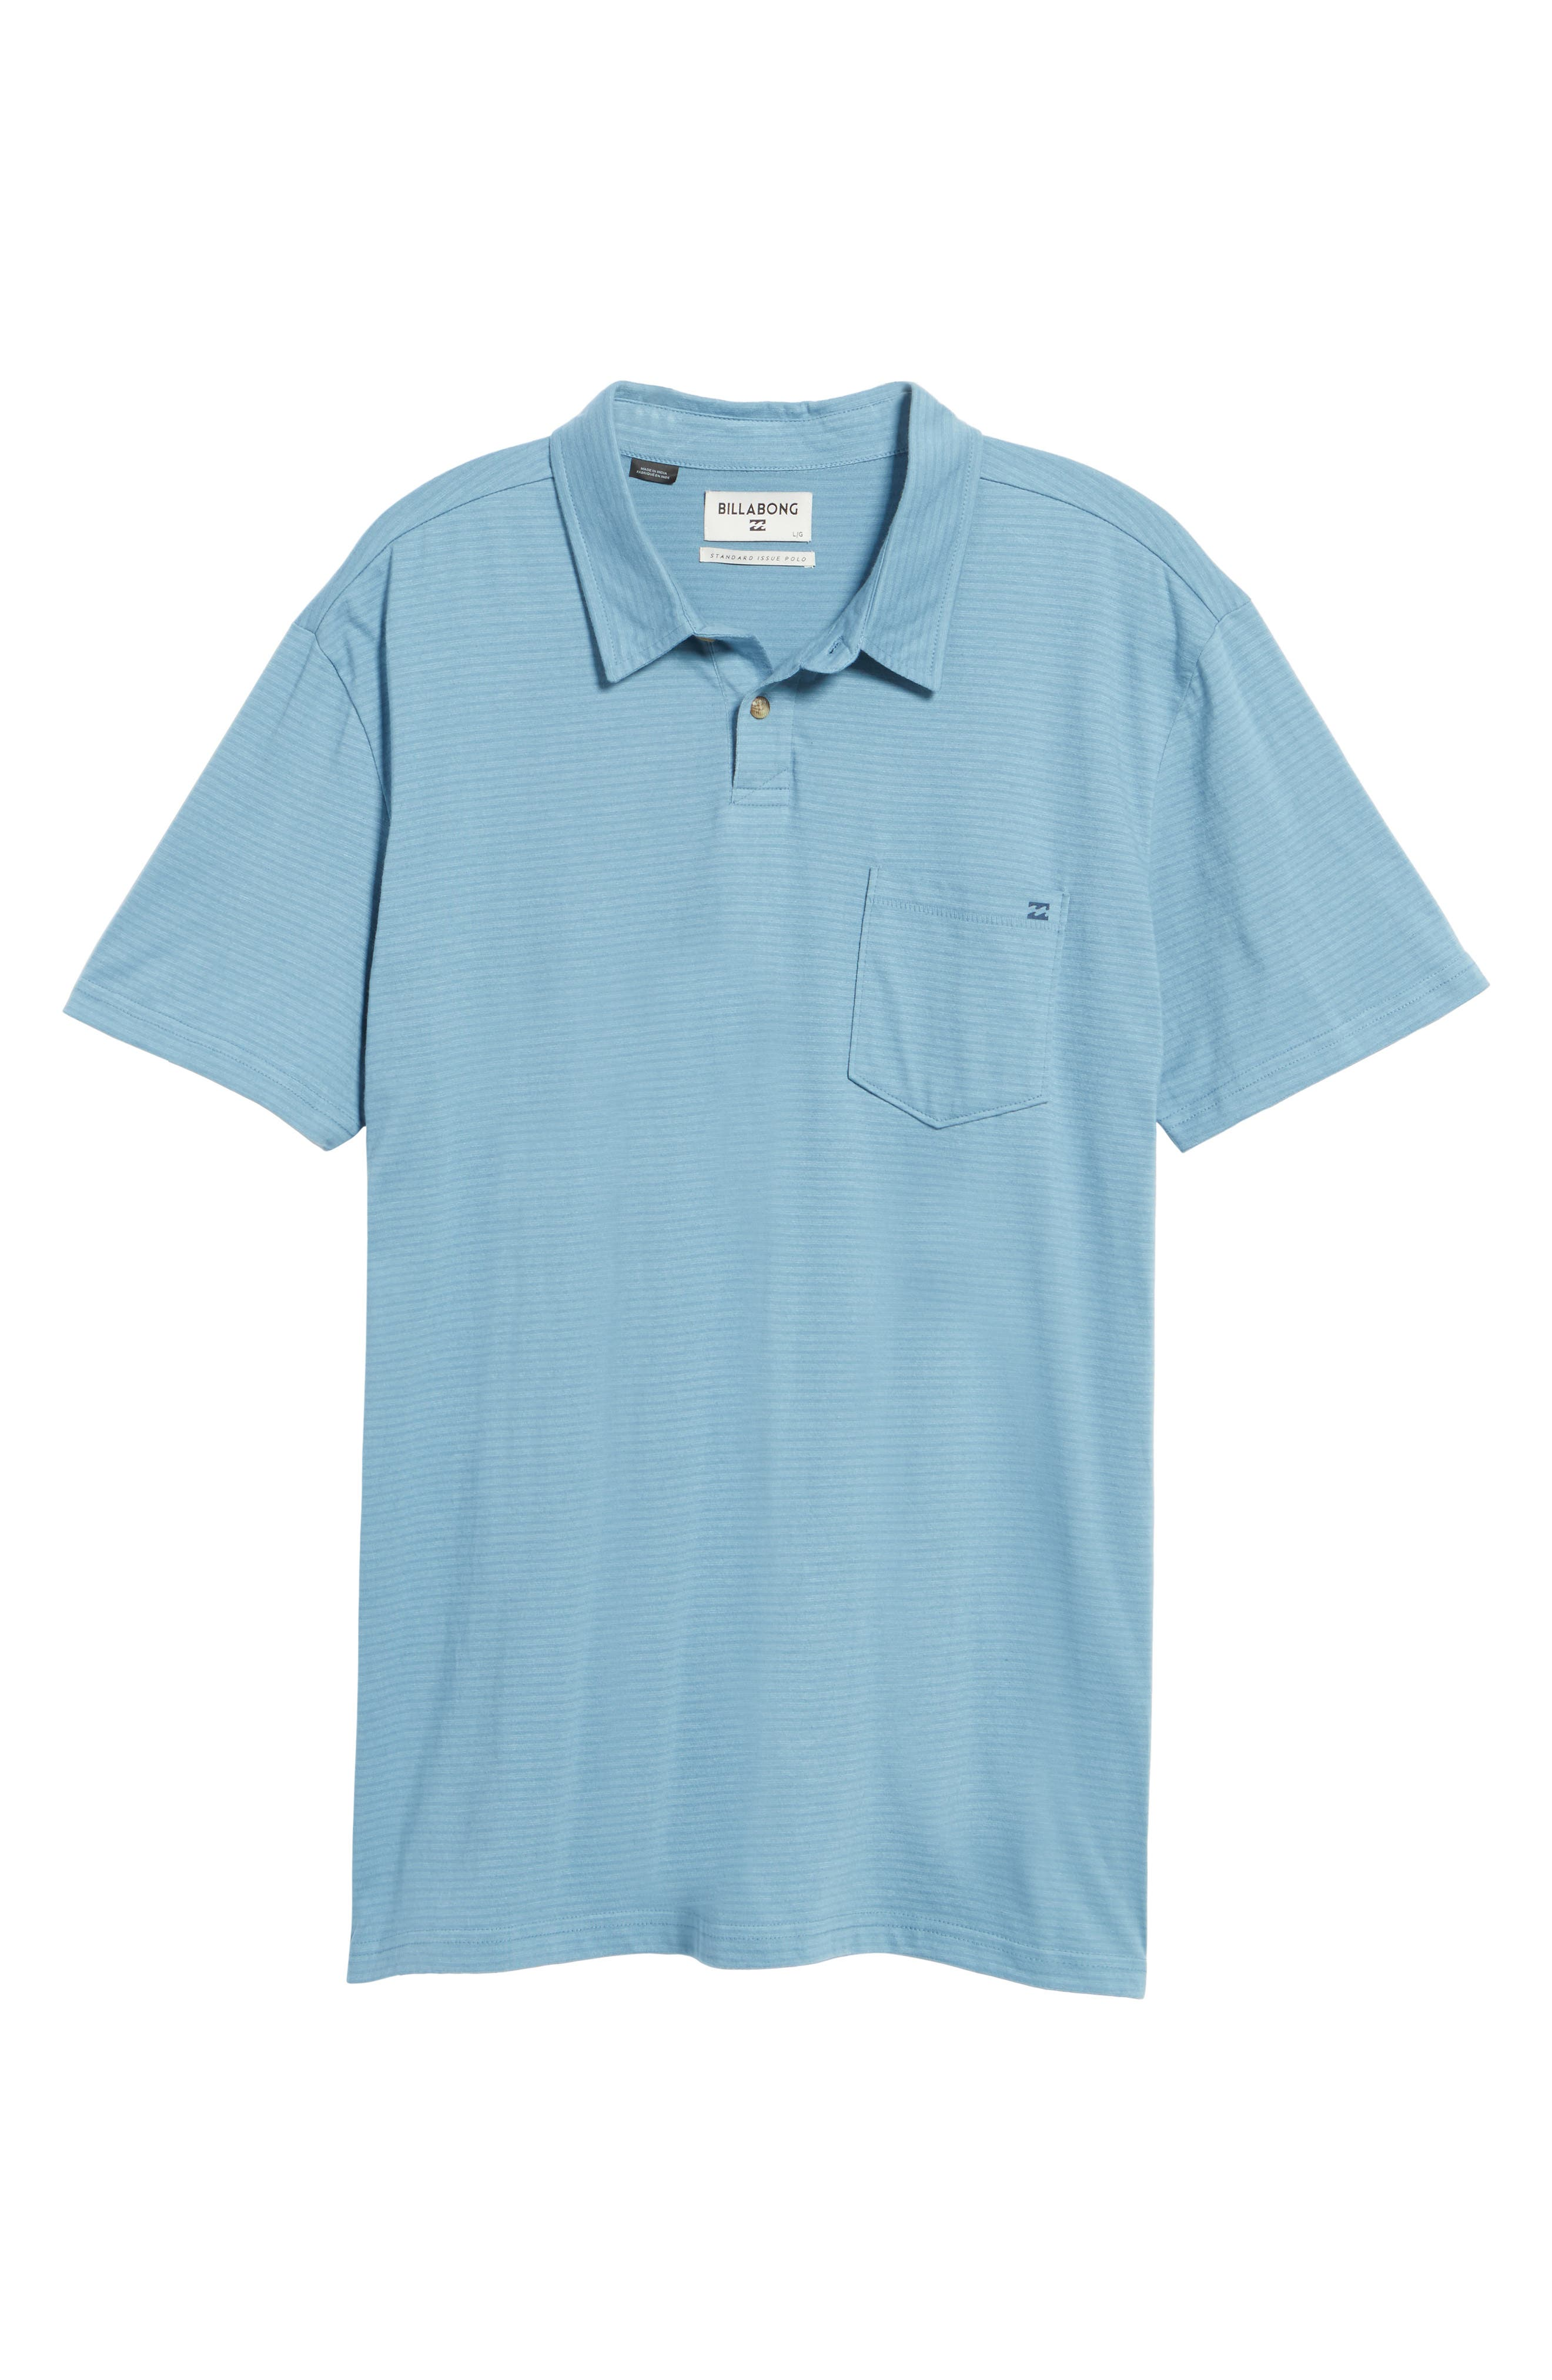 Standard Issue Polo,                             Alternate thumbnail 24, color,